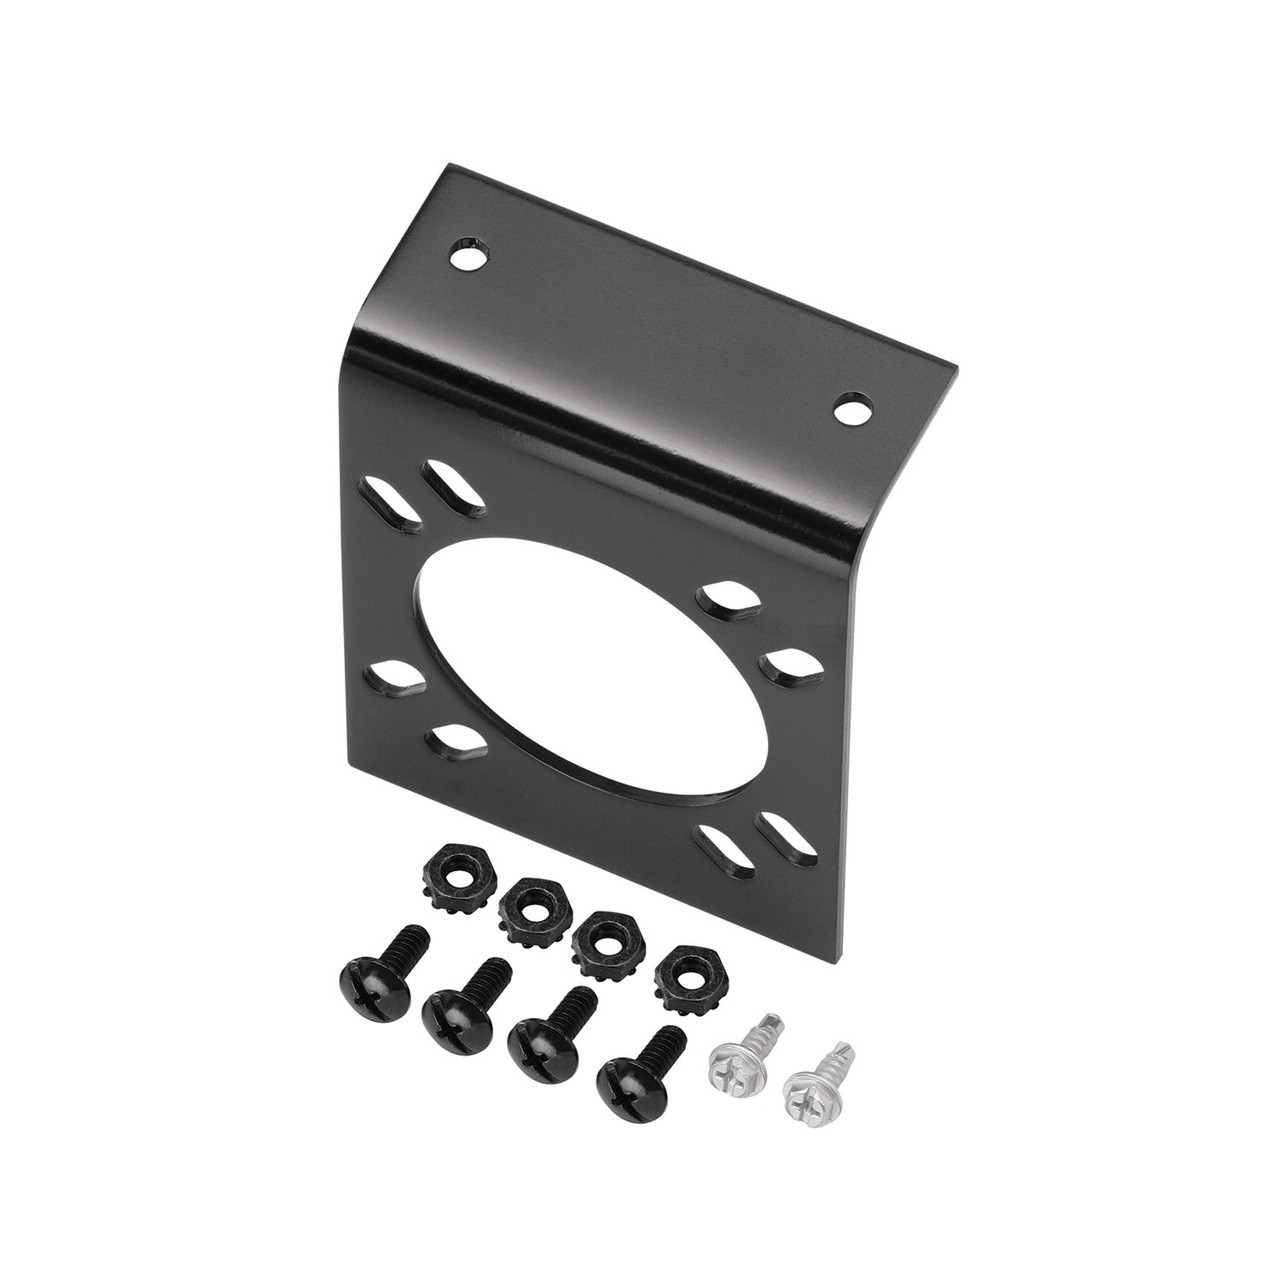 Tow Ready 118137-010 Mounting Bracket for 4 5 and 6-Way Connector